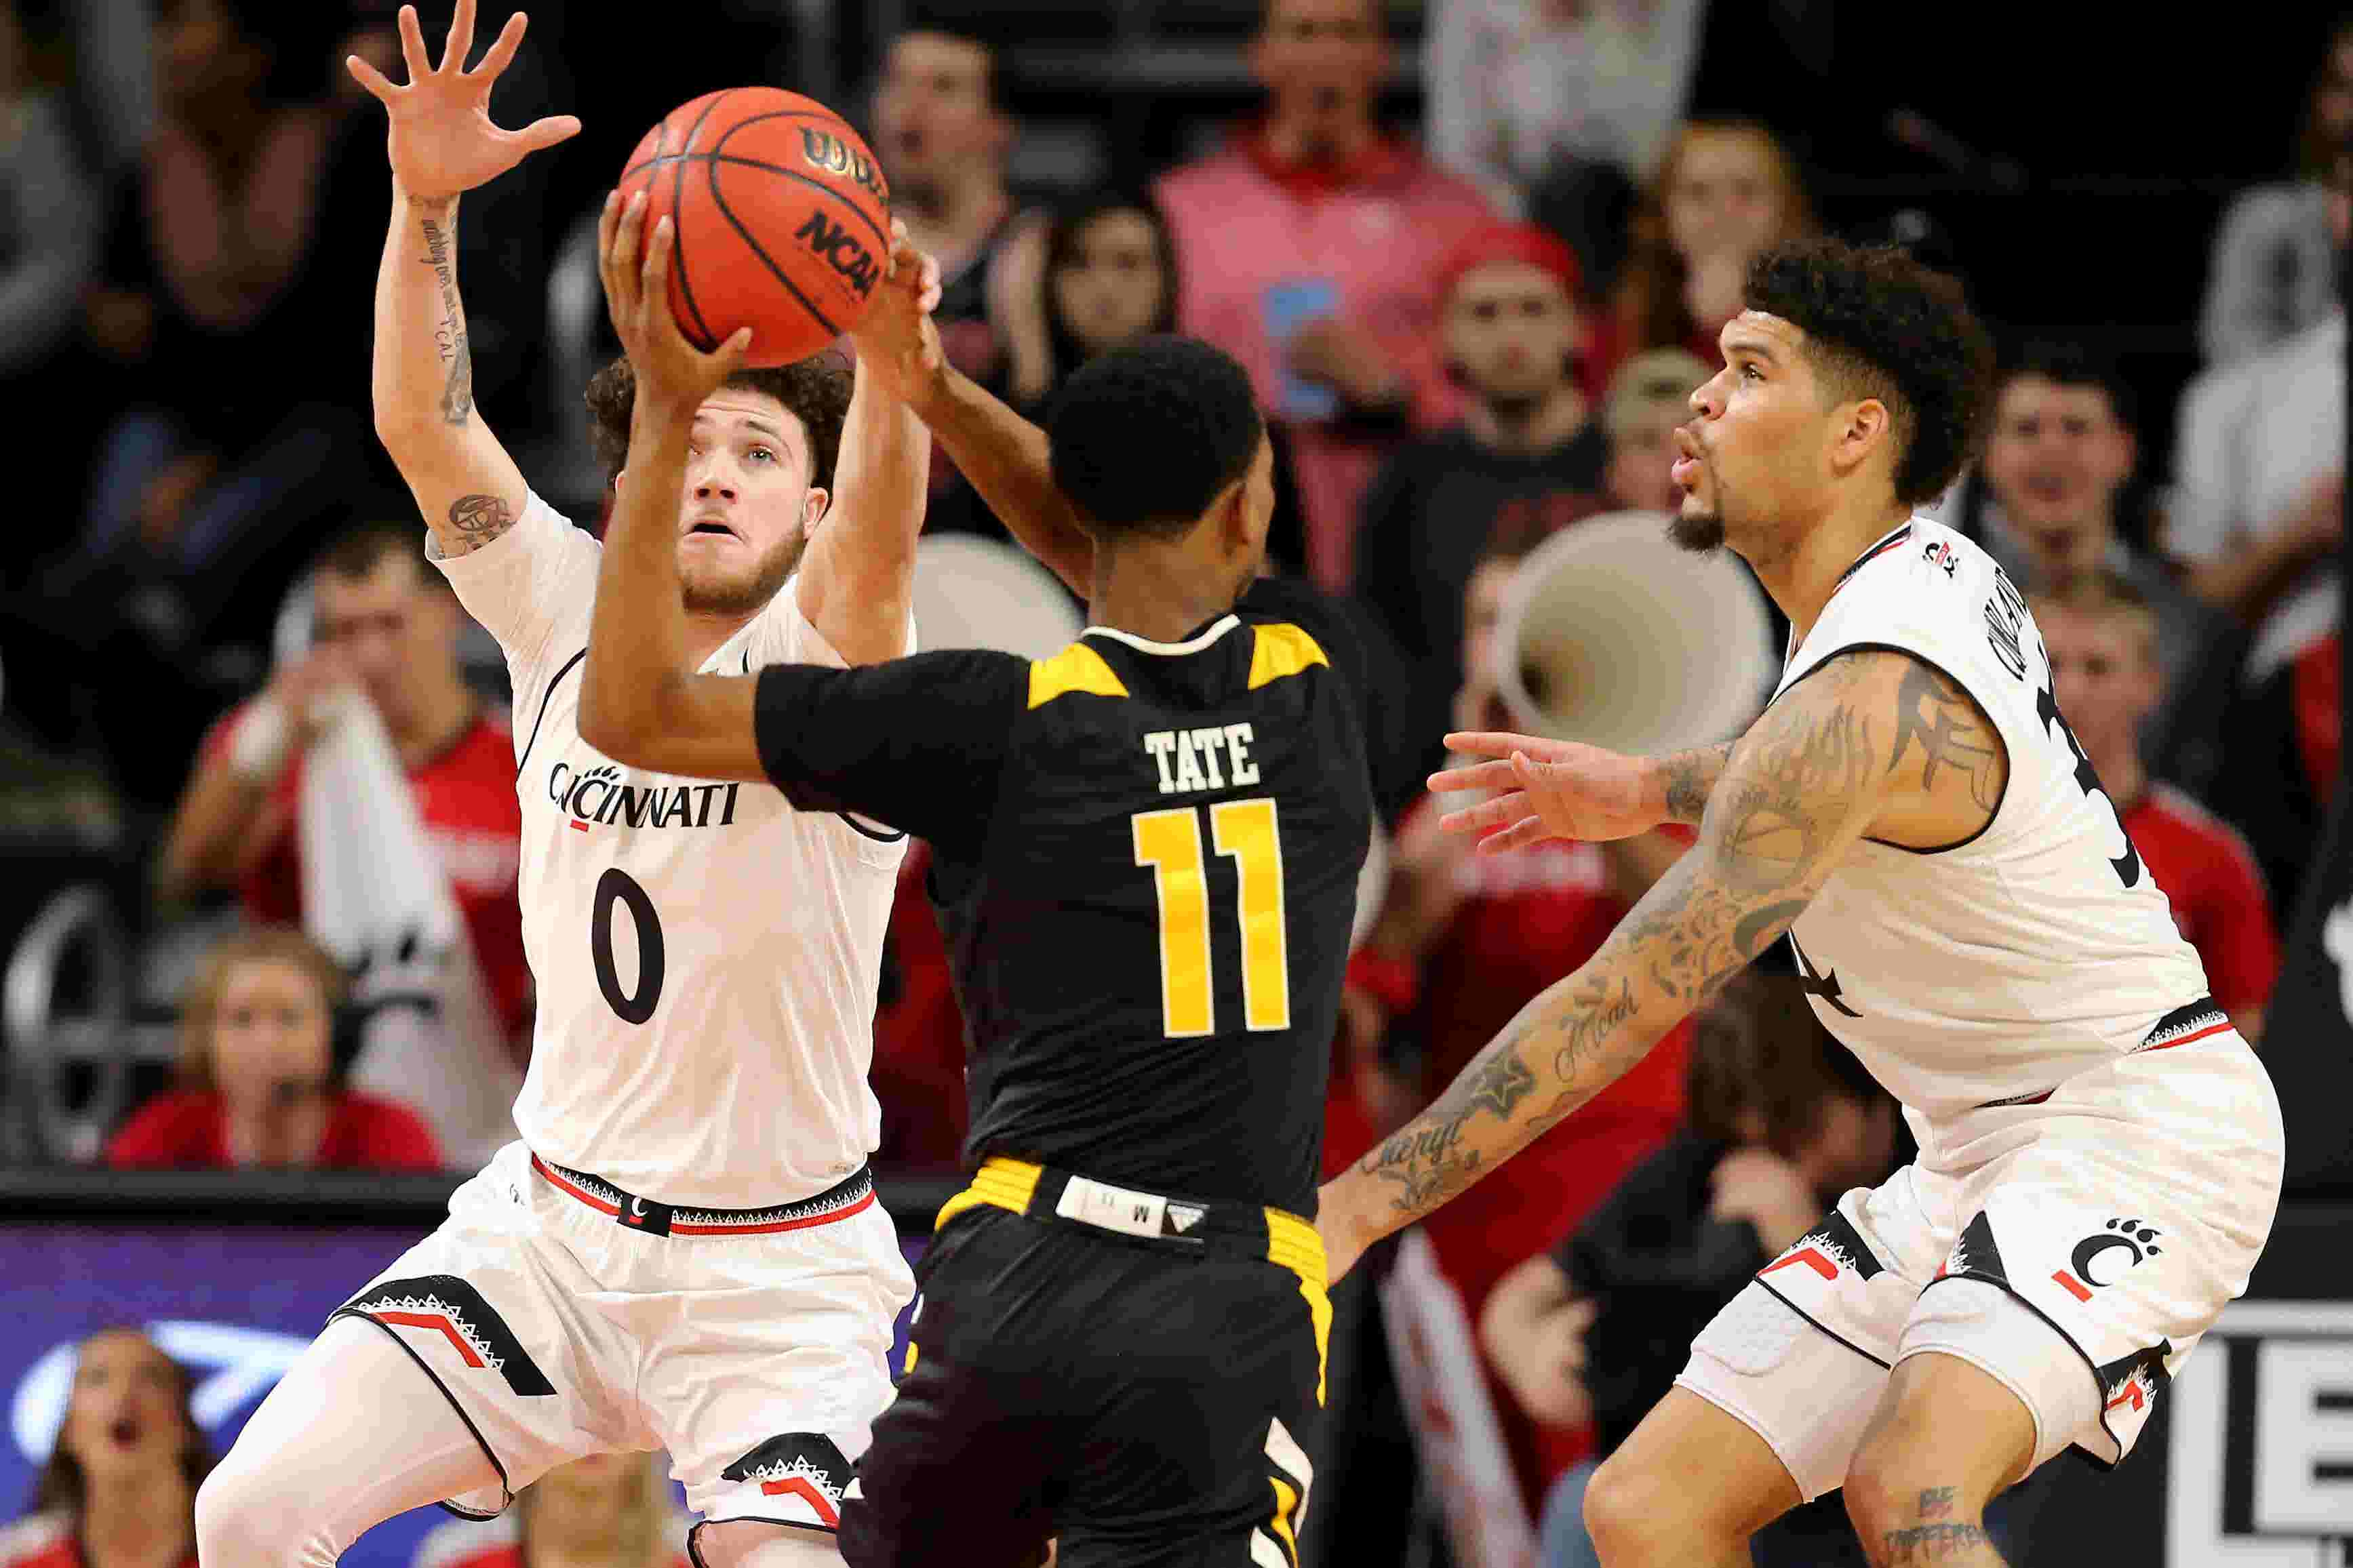 uc, xavier basketball 2018-19: why they should play nku norse more